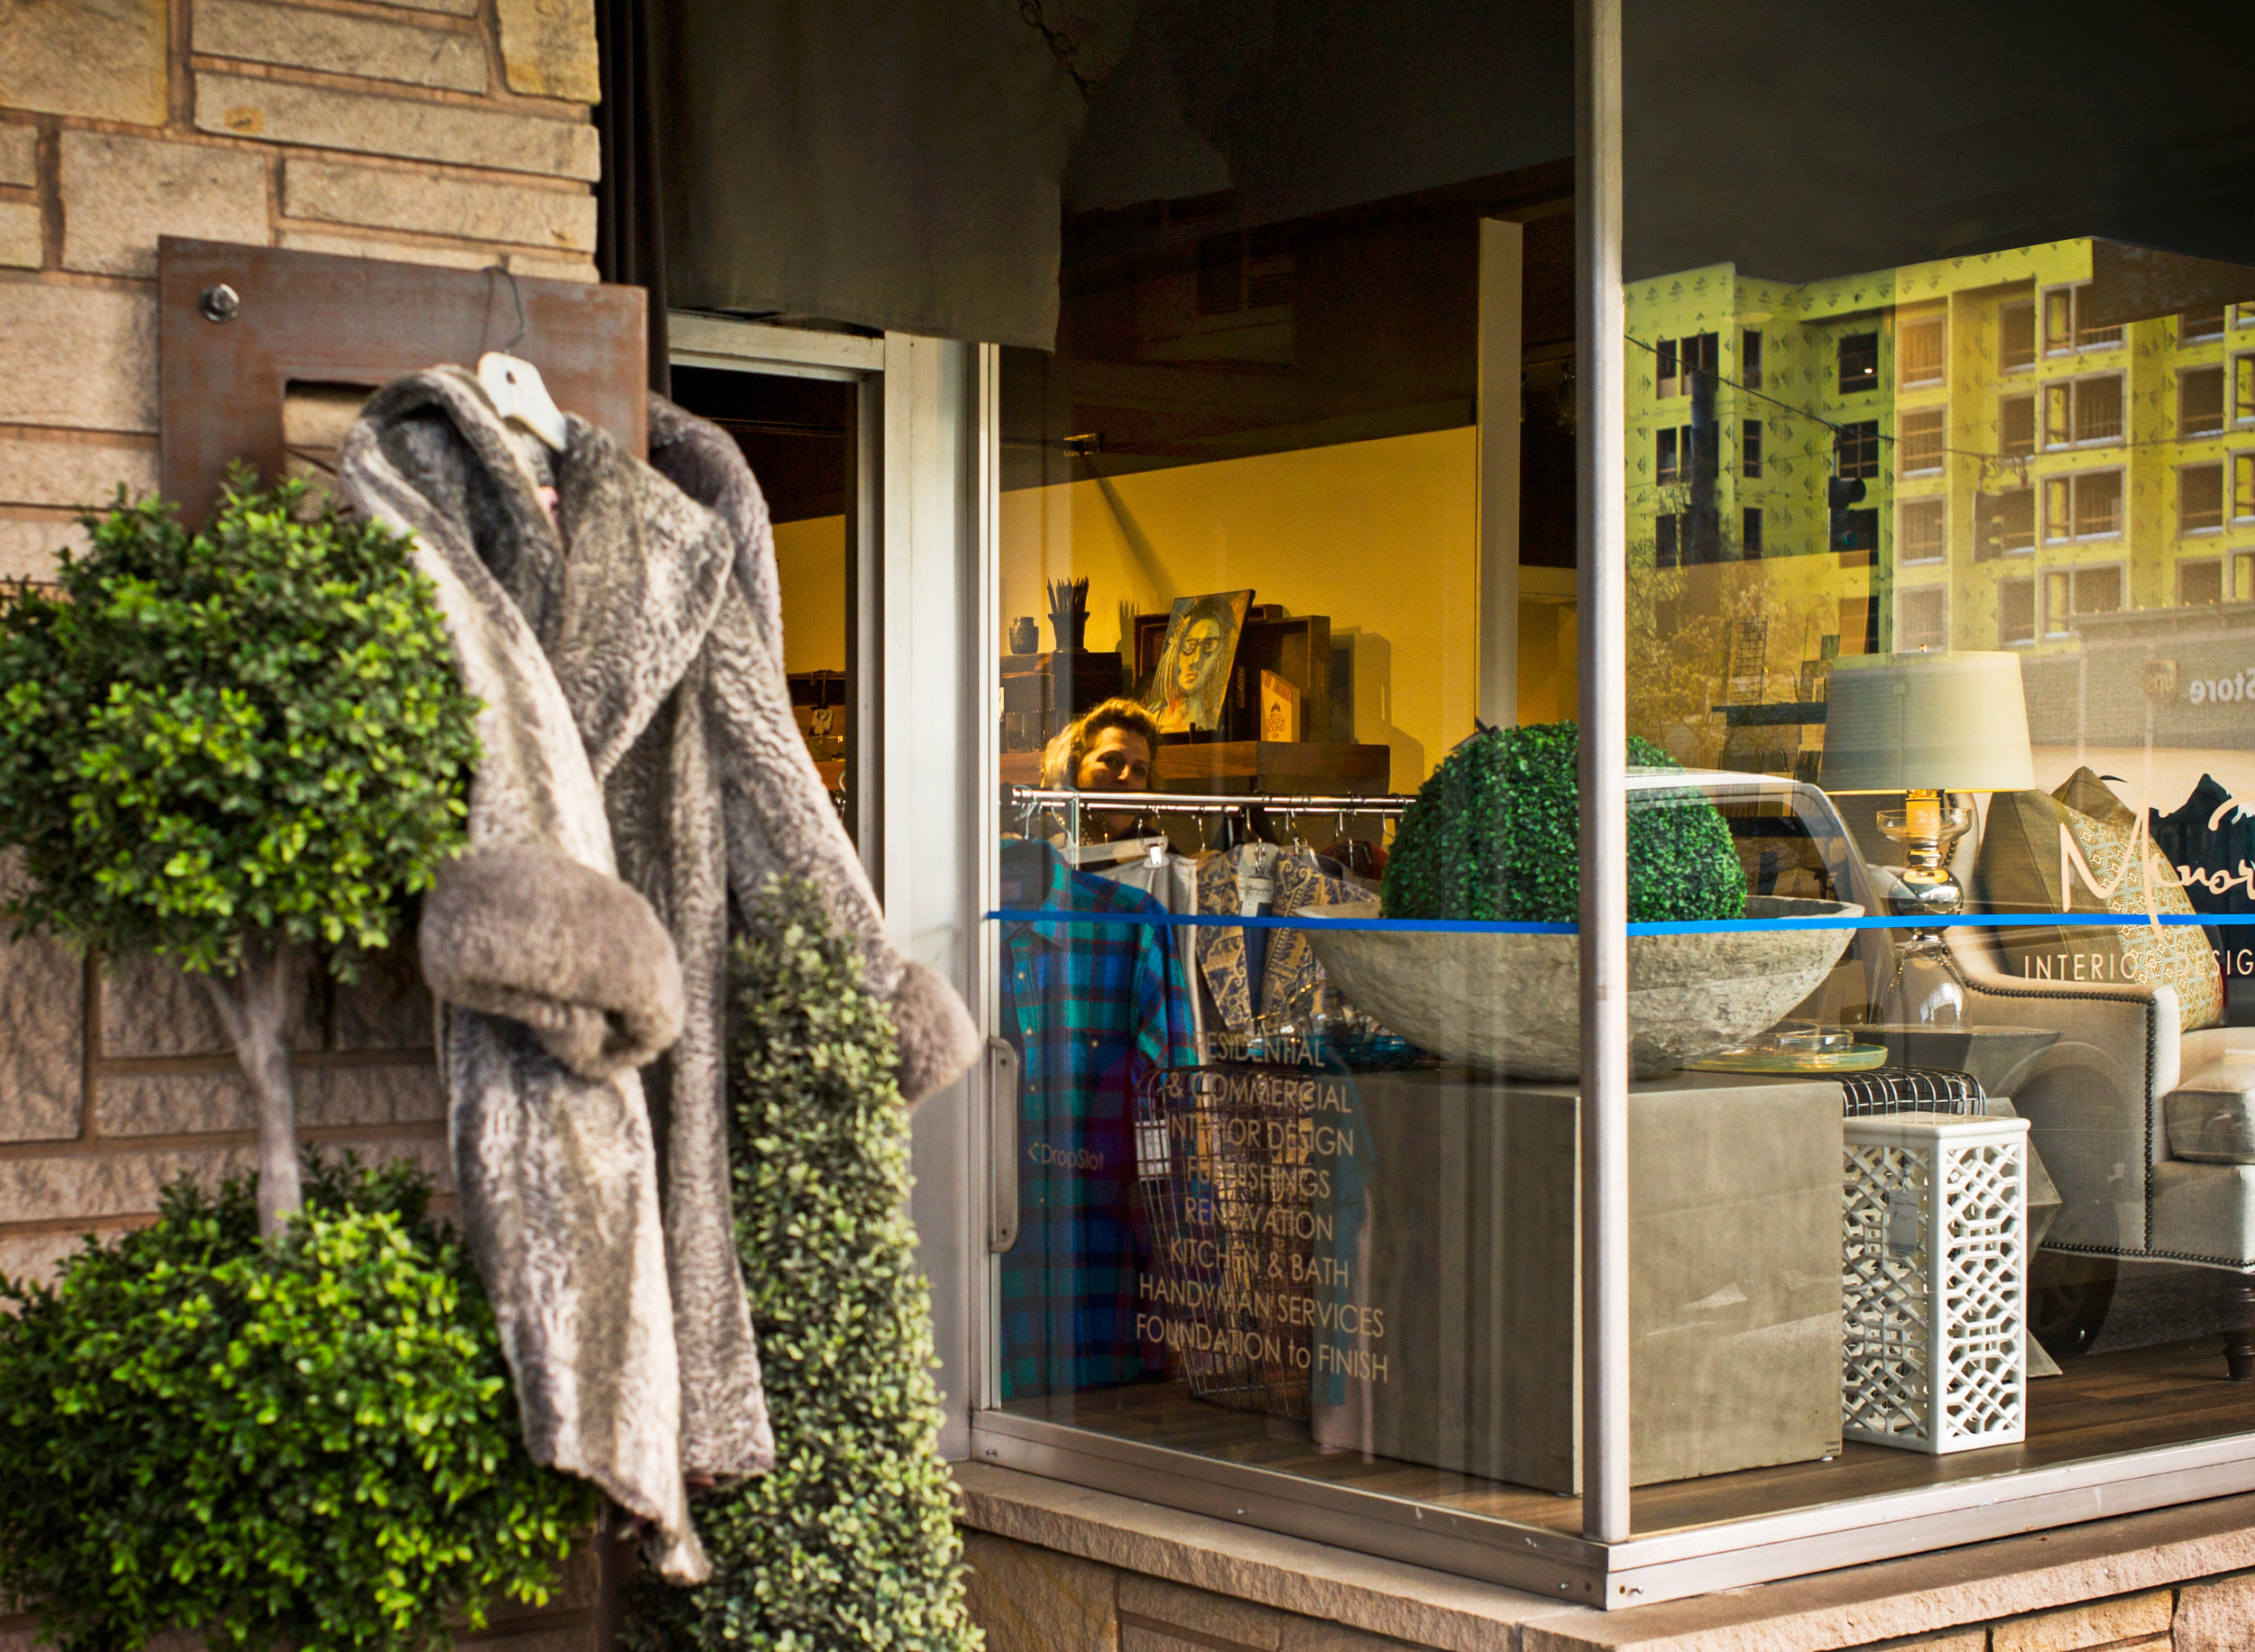 Woman In Shop With Coats Hanging On The Sign In Front, On Proctor ©Christopher Petrich